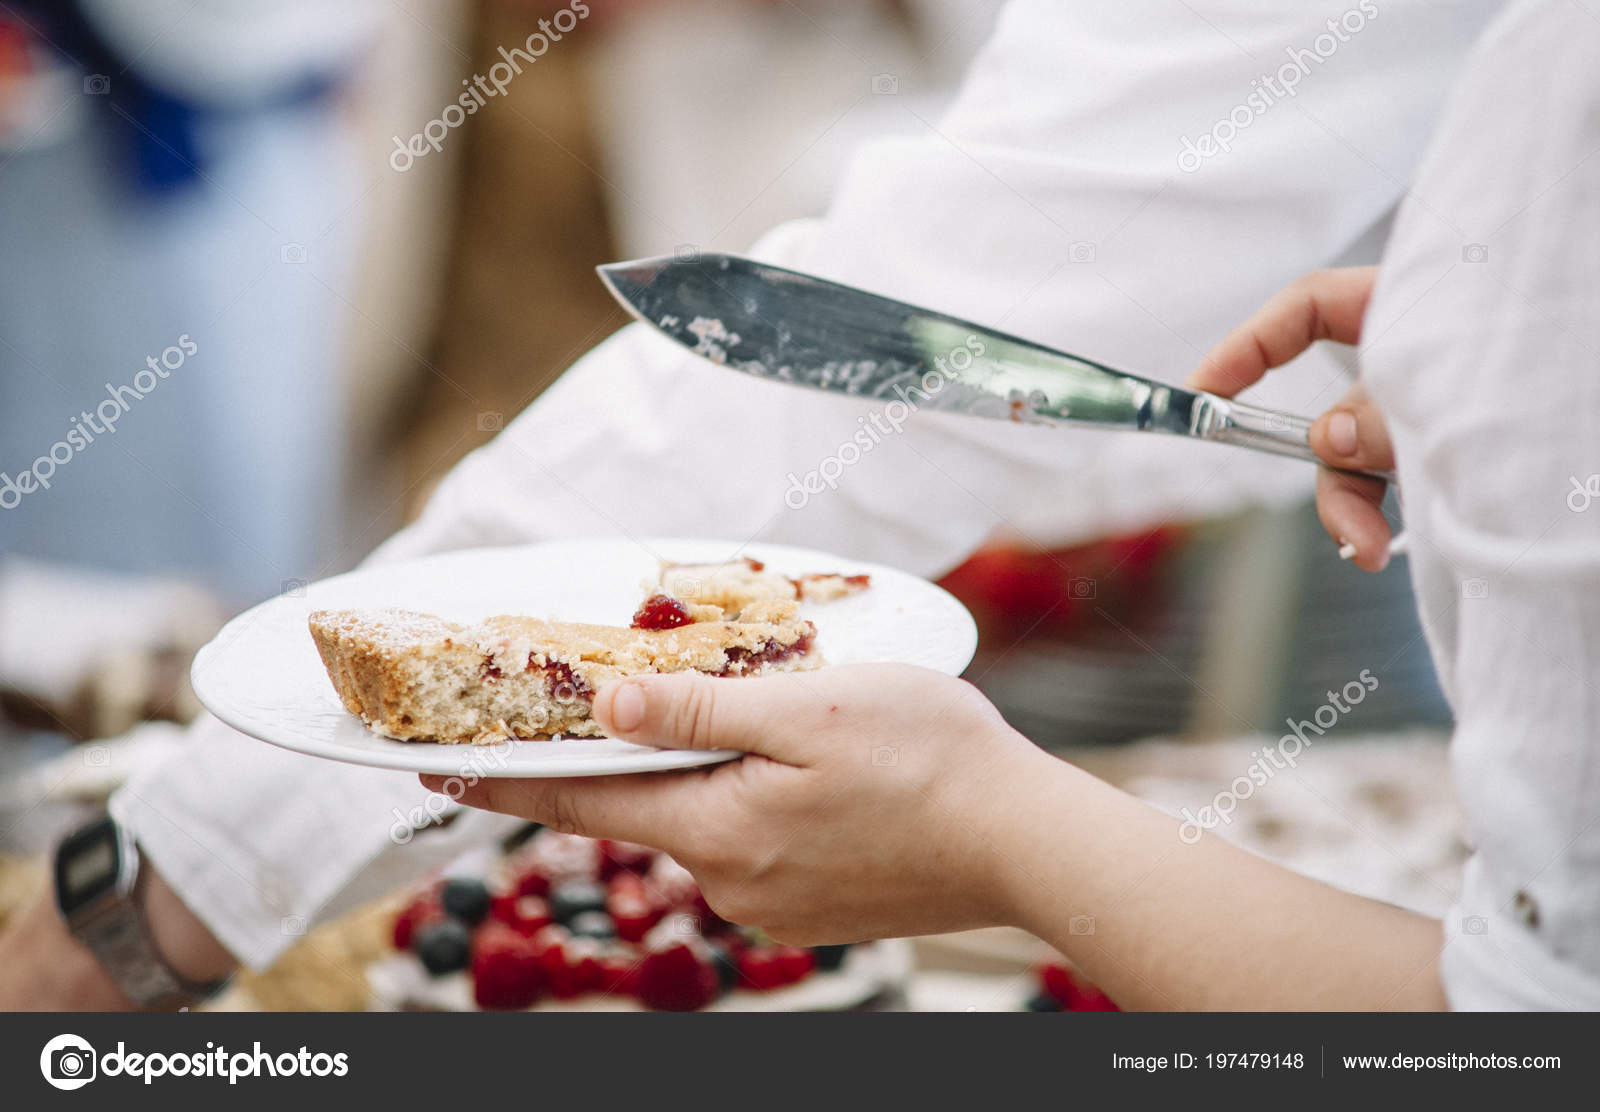 Hand holding plates of cake u2014 Photo by clementetinin & Hand Holding Plates Cake u2014 Stock Photo © clementetinin #197479148